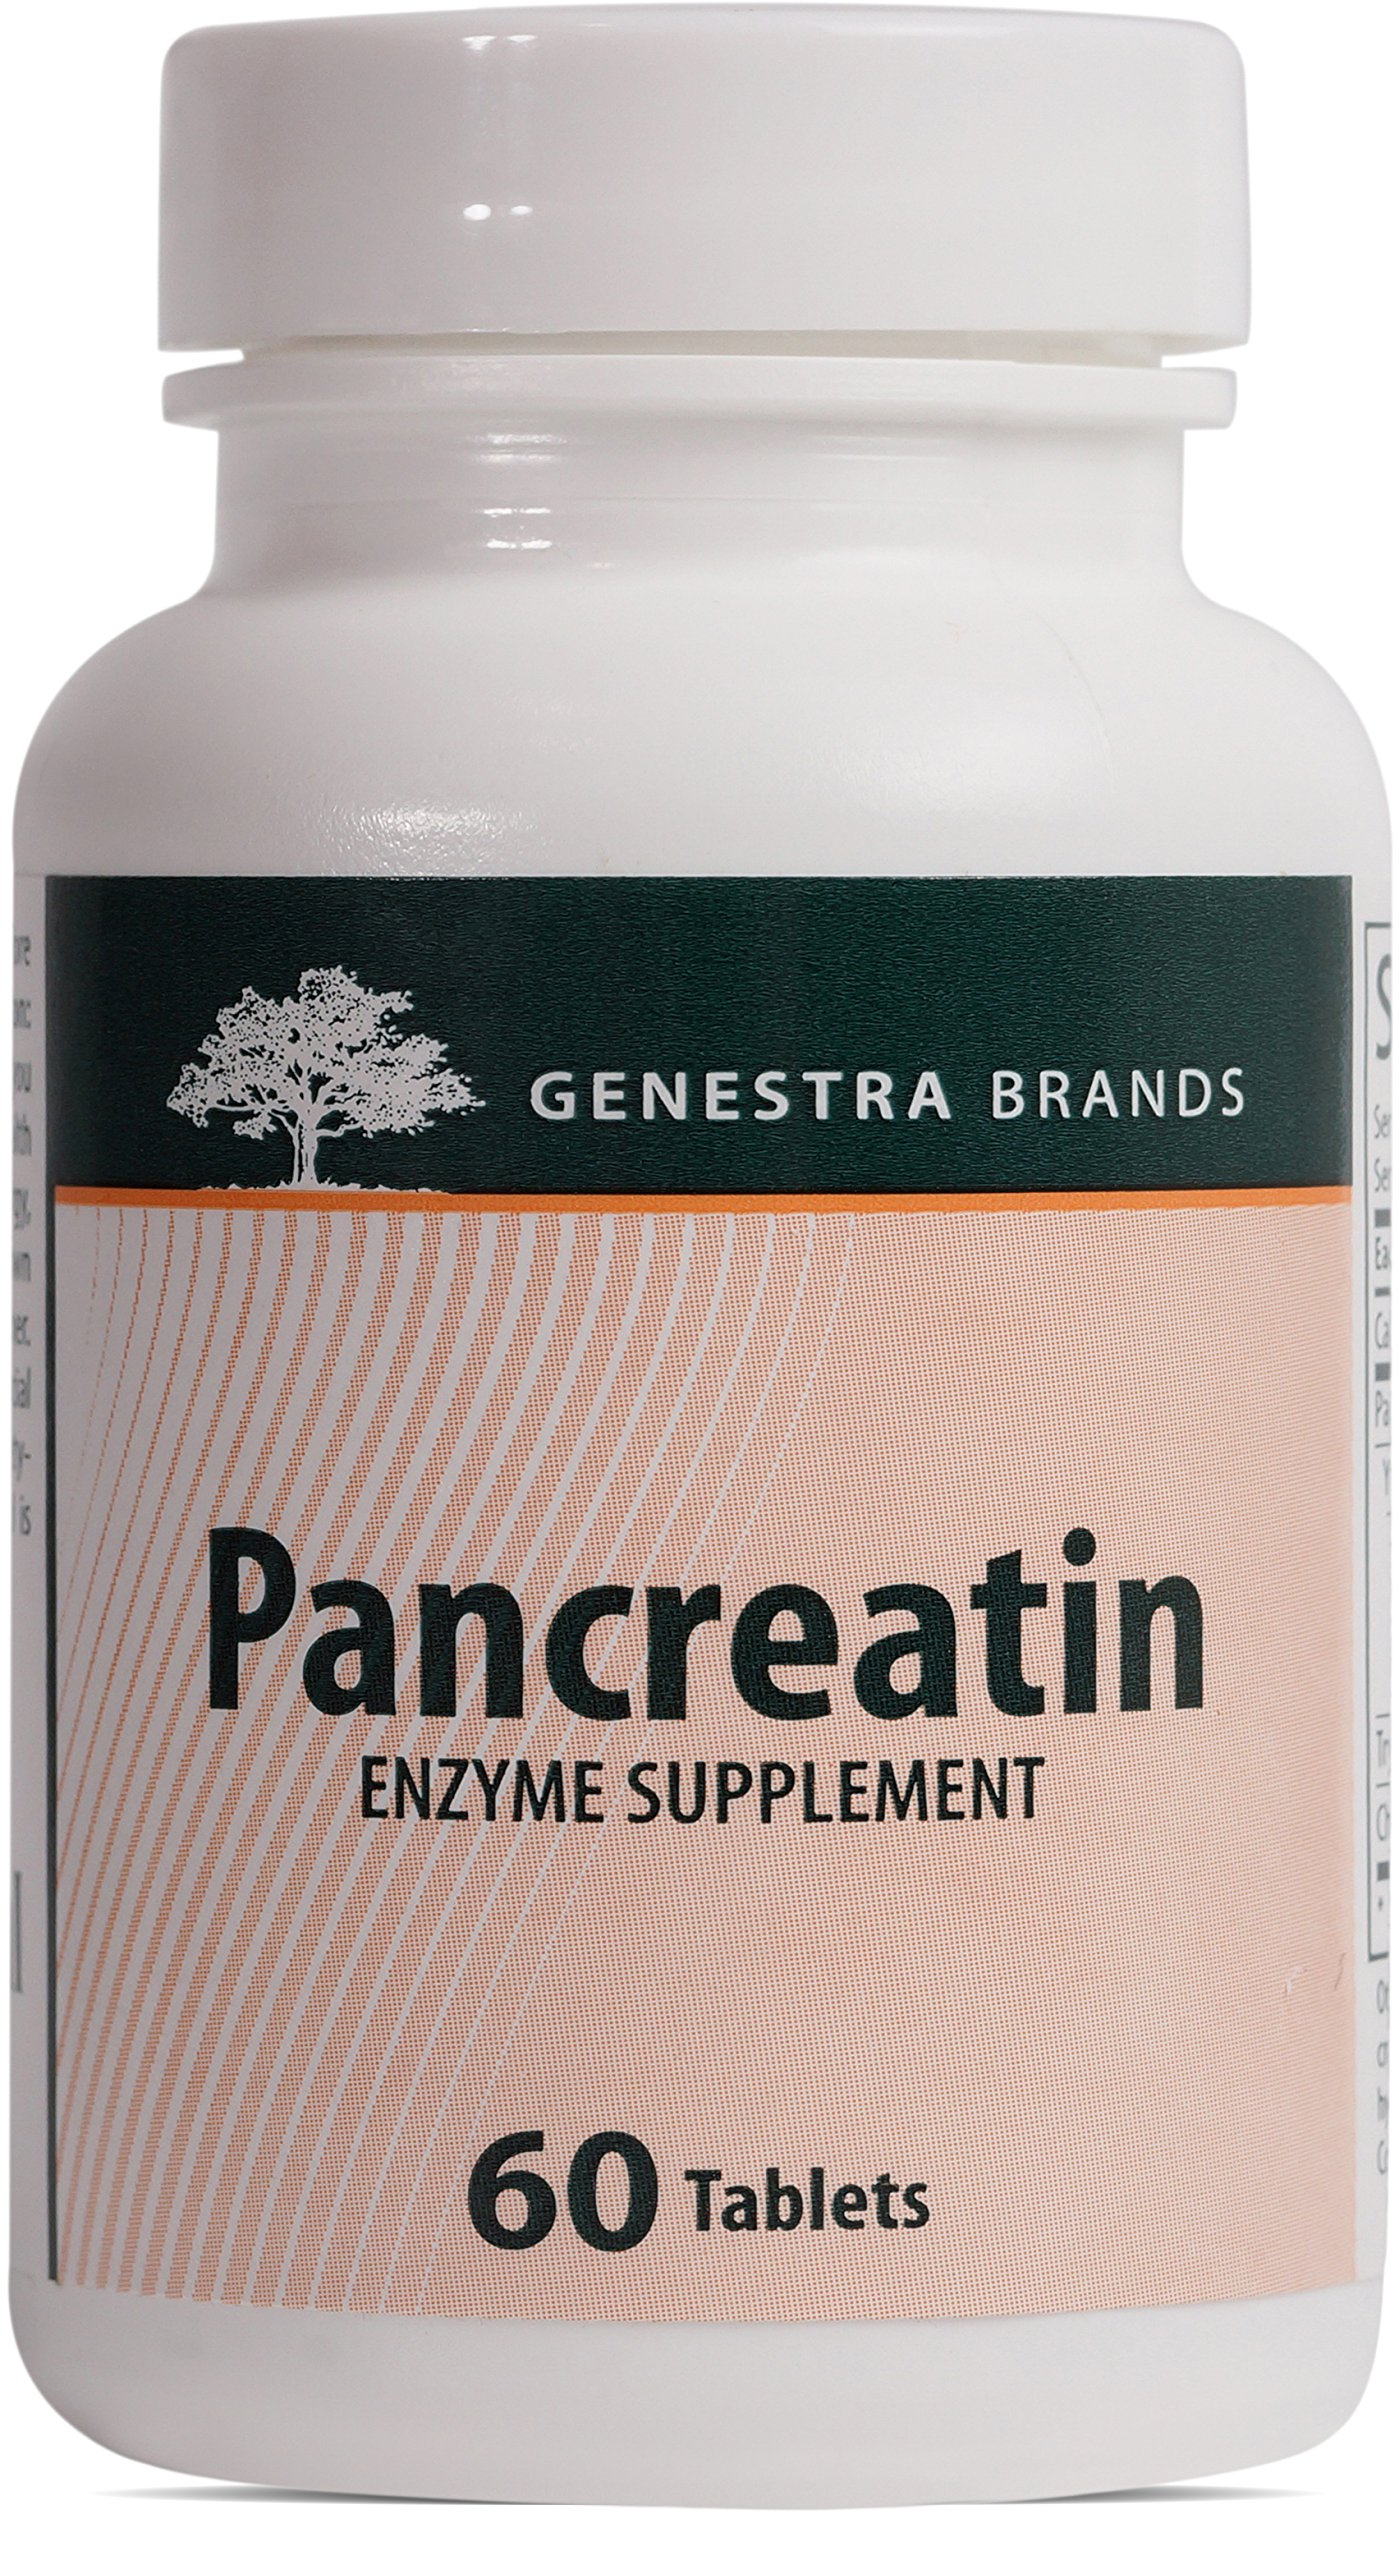 Genestra Brands - Pancreatin - Pancreatic Enzymes to Support Digestion and Nutrient Absorption* - 60 Tablets